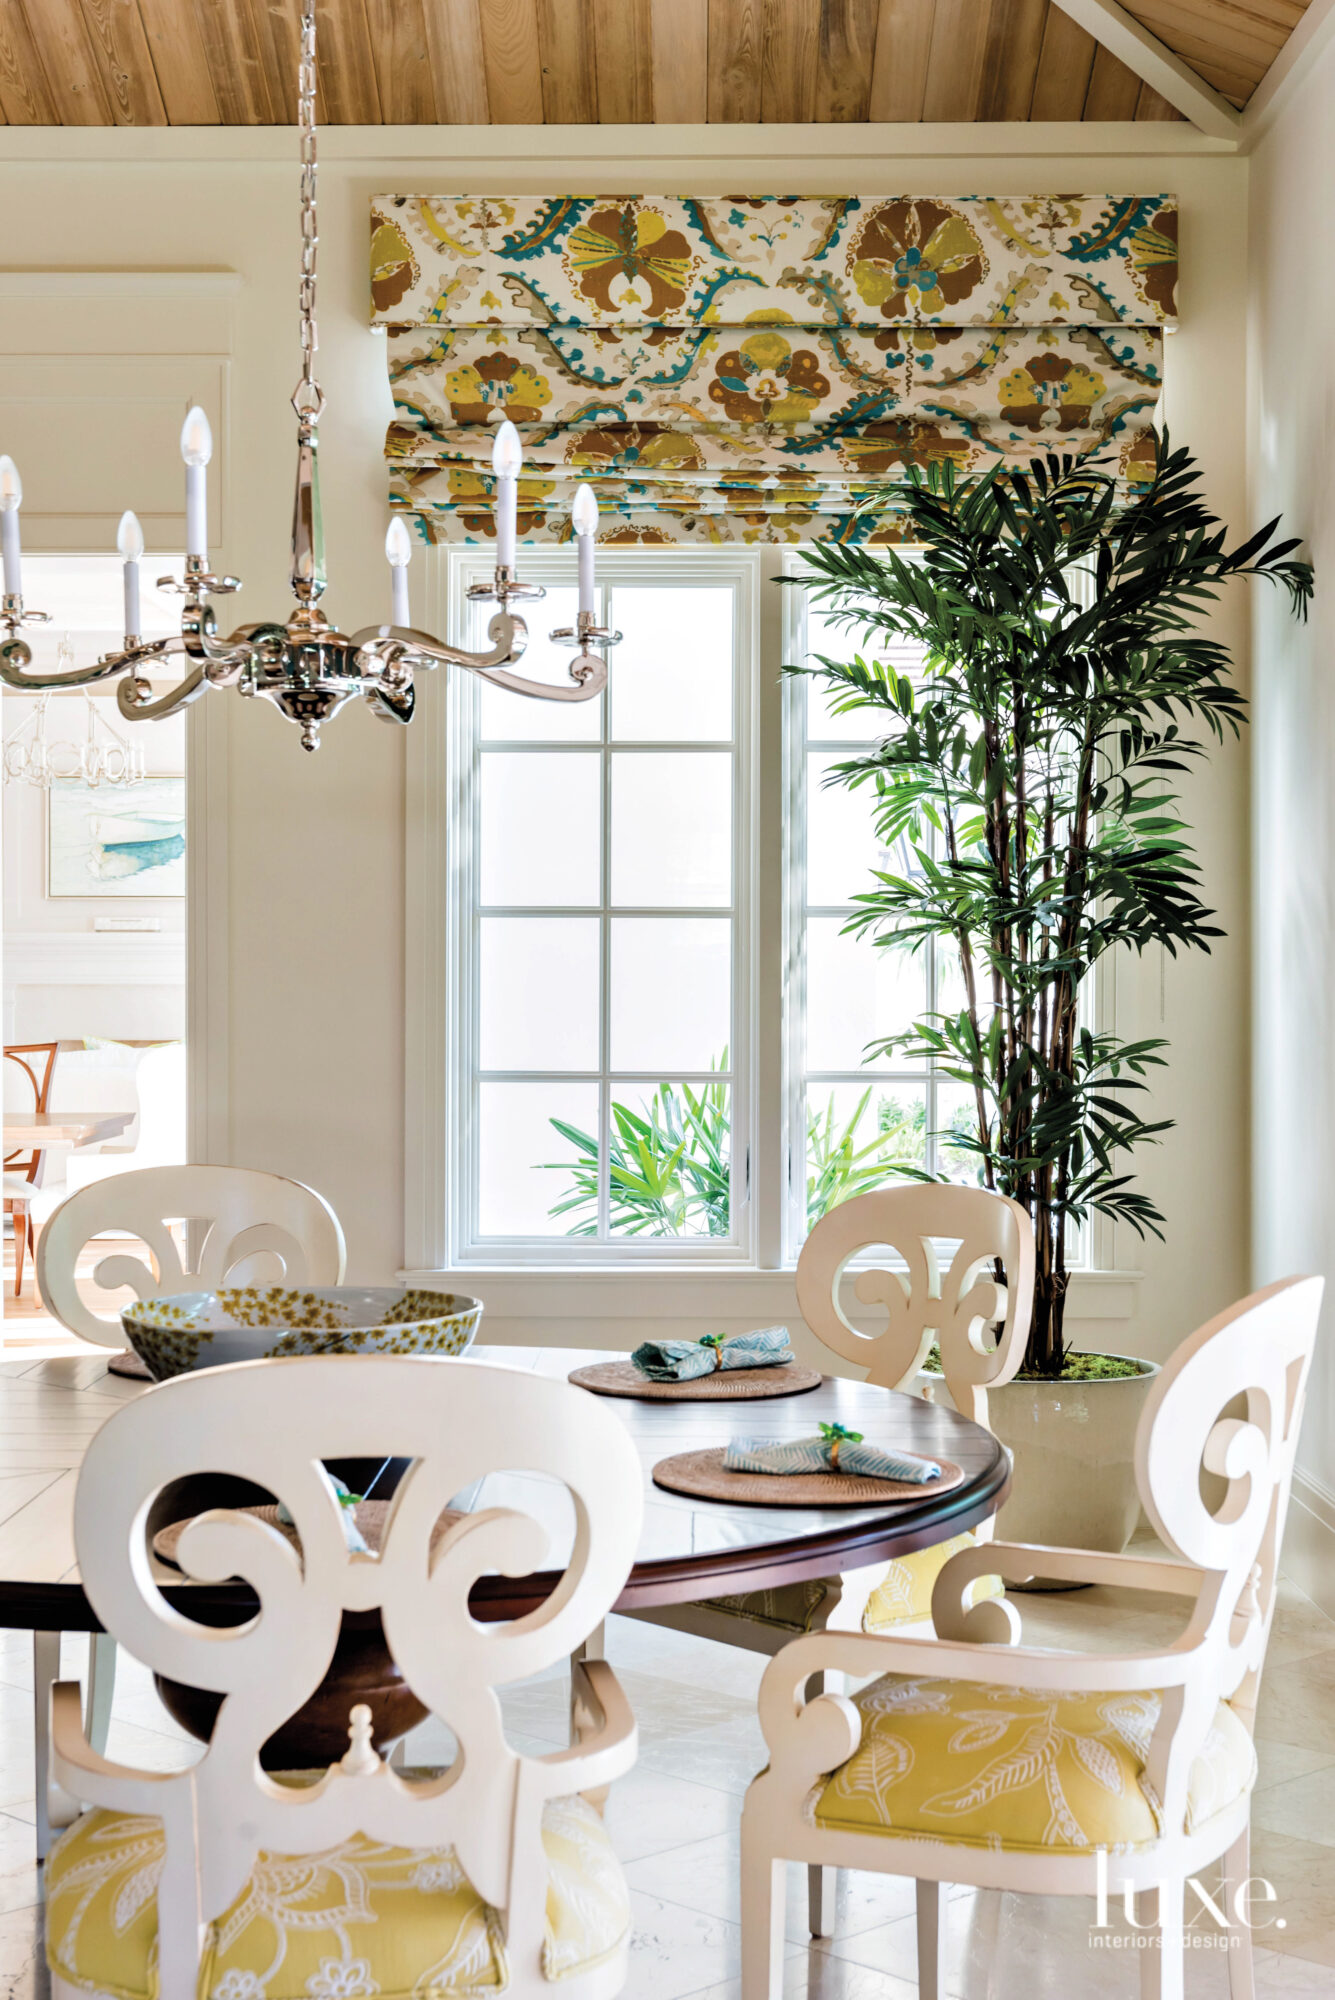 Dining area with yellow and...